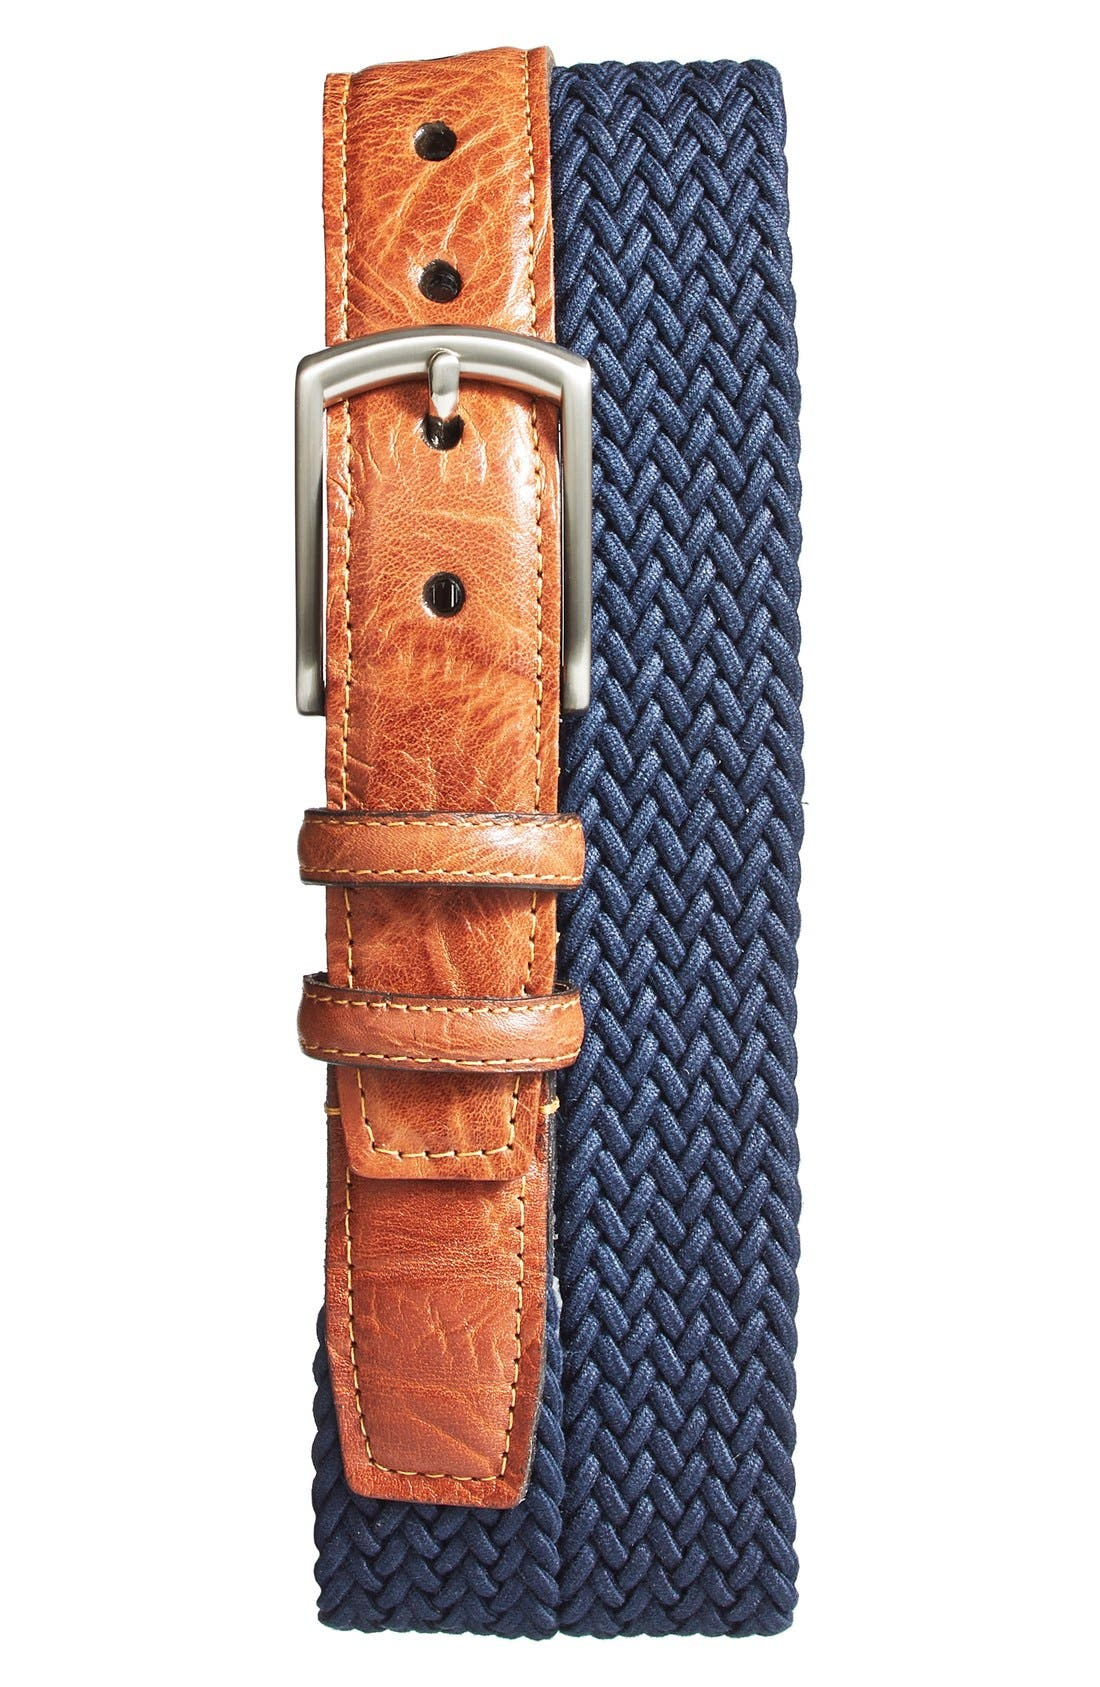 Richly grained leather tabs detail a casually handsome braided belt made in sturdy stretch cotton and secured with a brushed nickel buckle. Style Name: Torino Braided Stretch Cotton Belt. Style Number: 5080236. Available in stores.